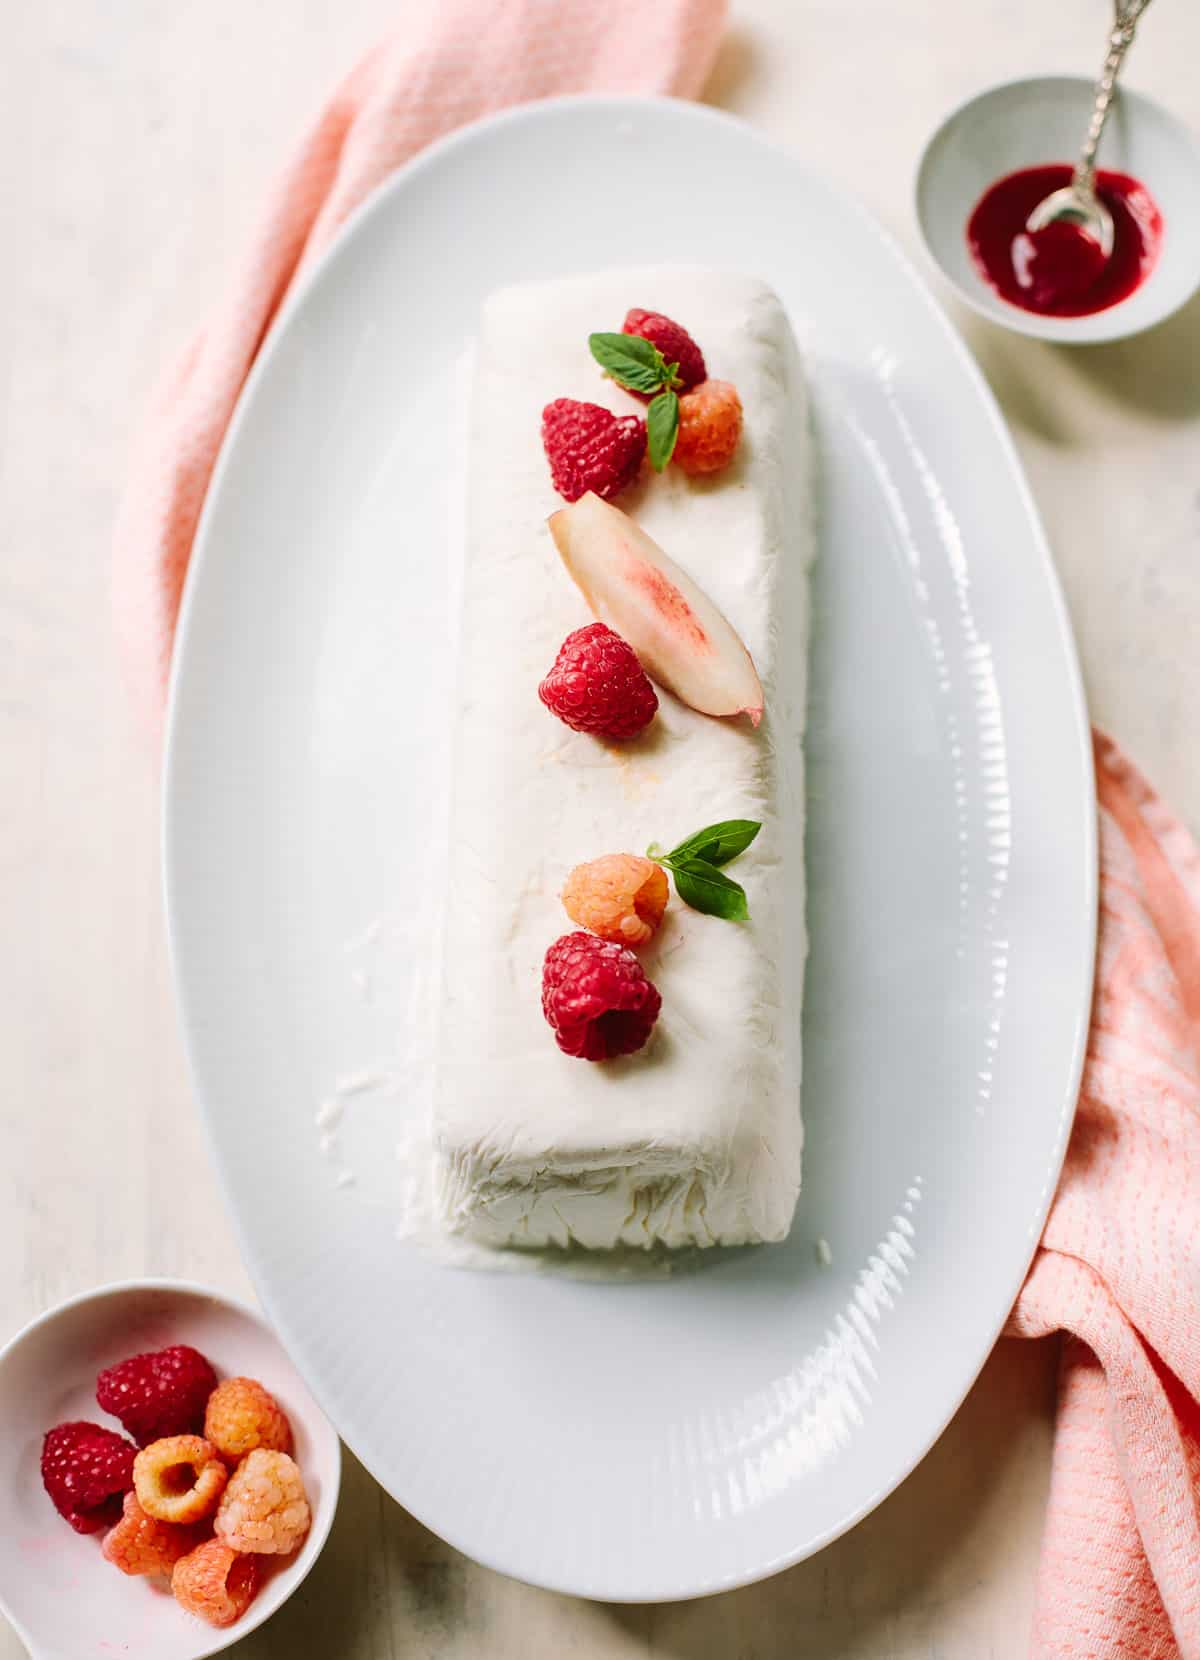 Triple Cream Vanilla Semifreddo with Raspberry Sauce